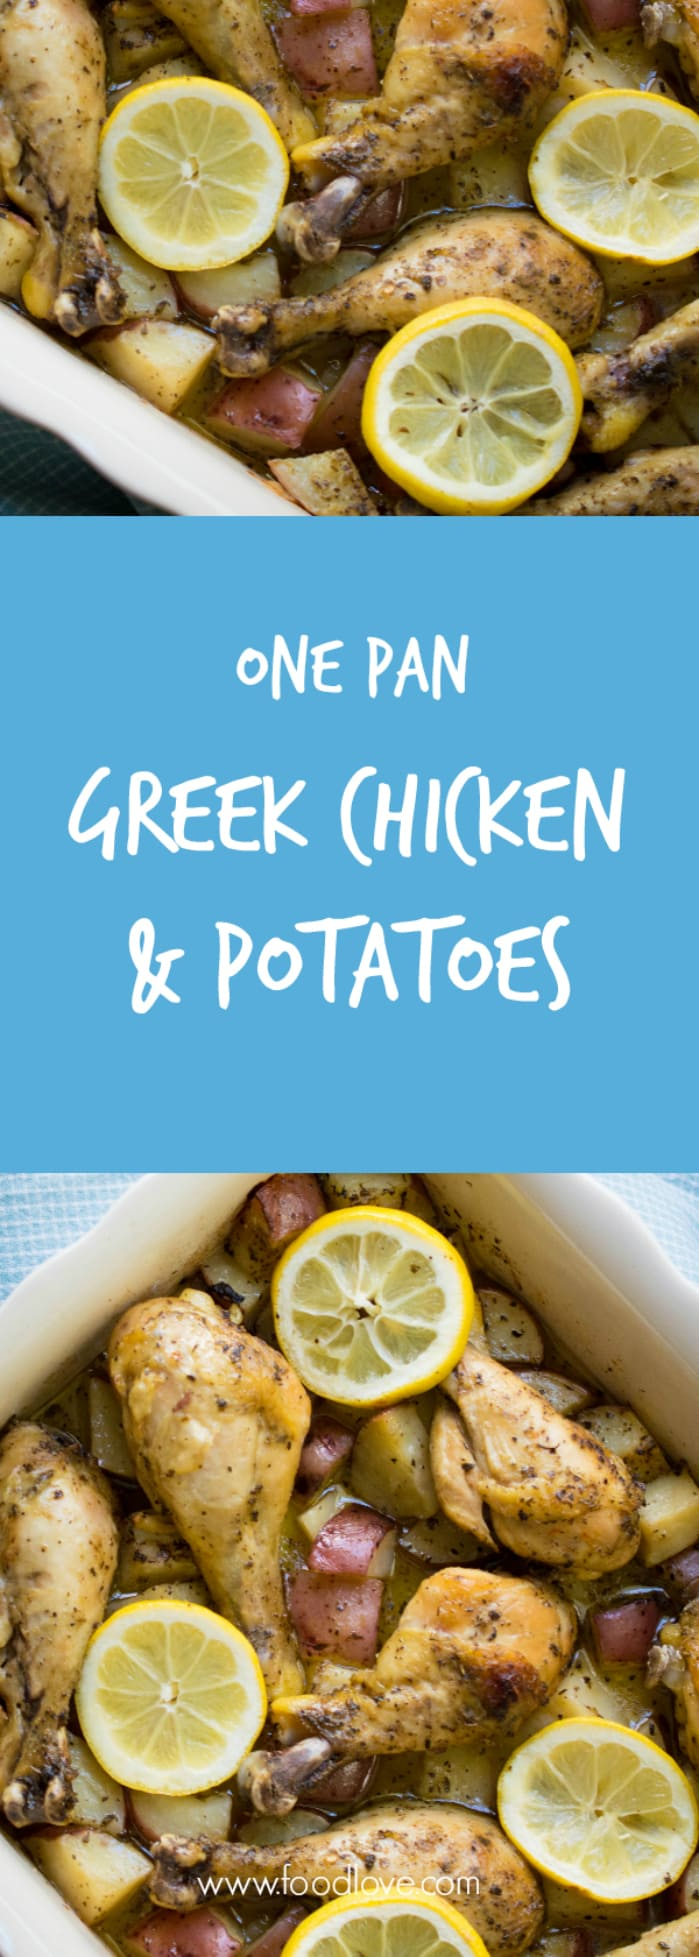 Tastes so good you'll want to drink the sauce straight! One pan Greek lemon chicken and potatoes.